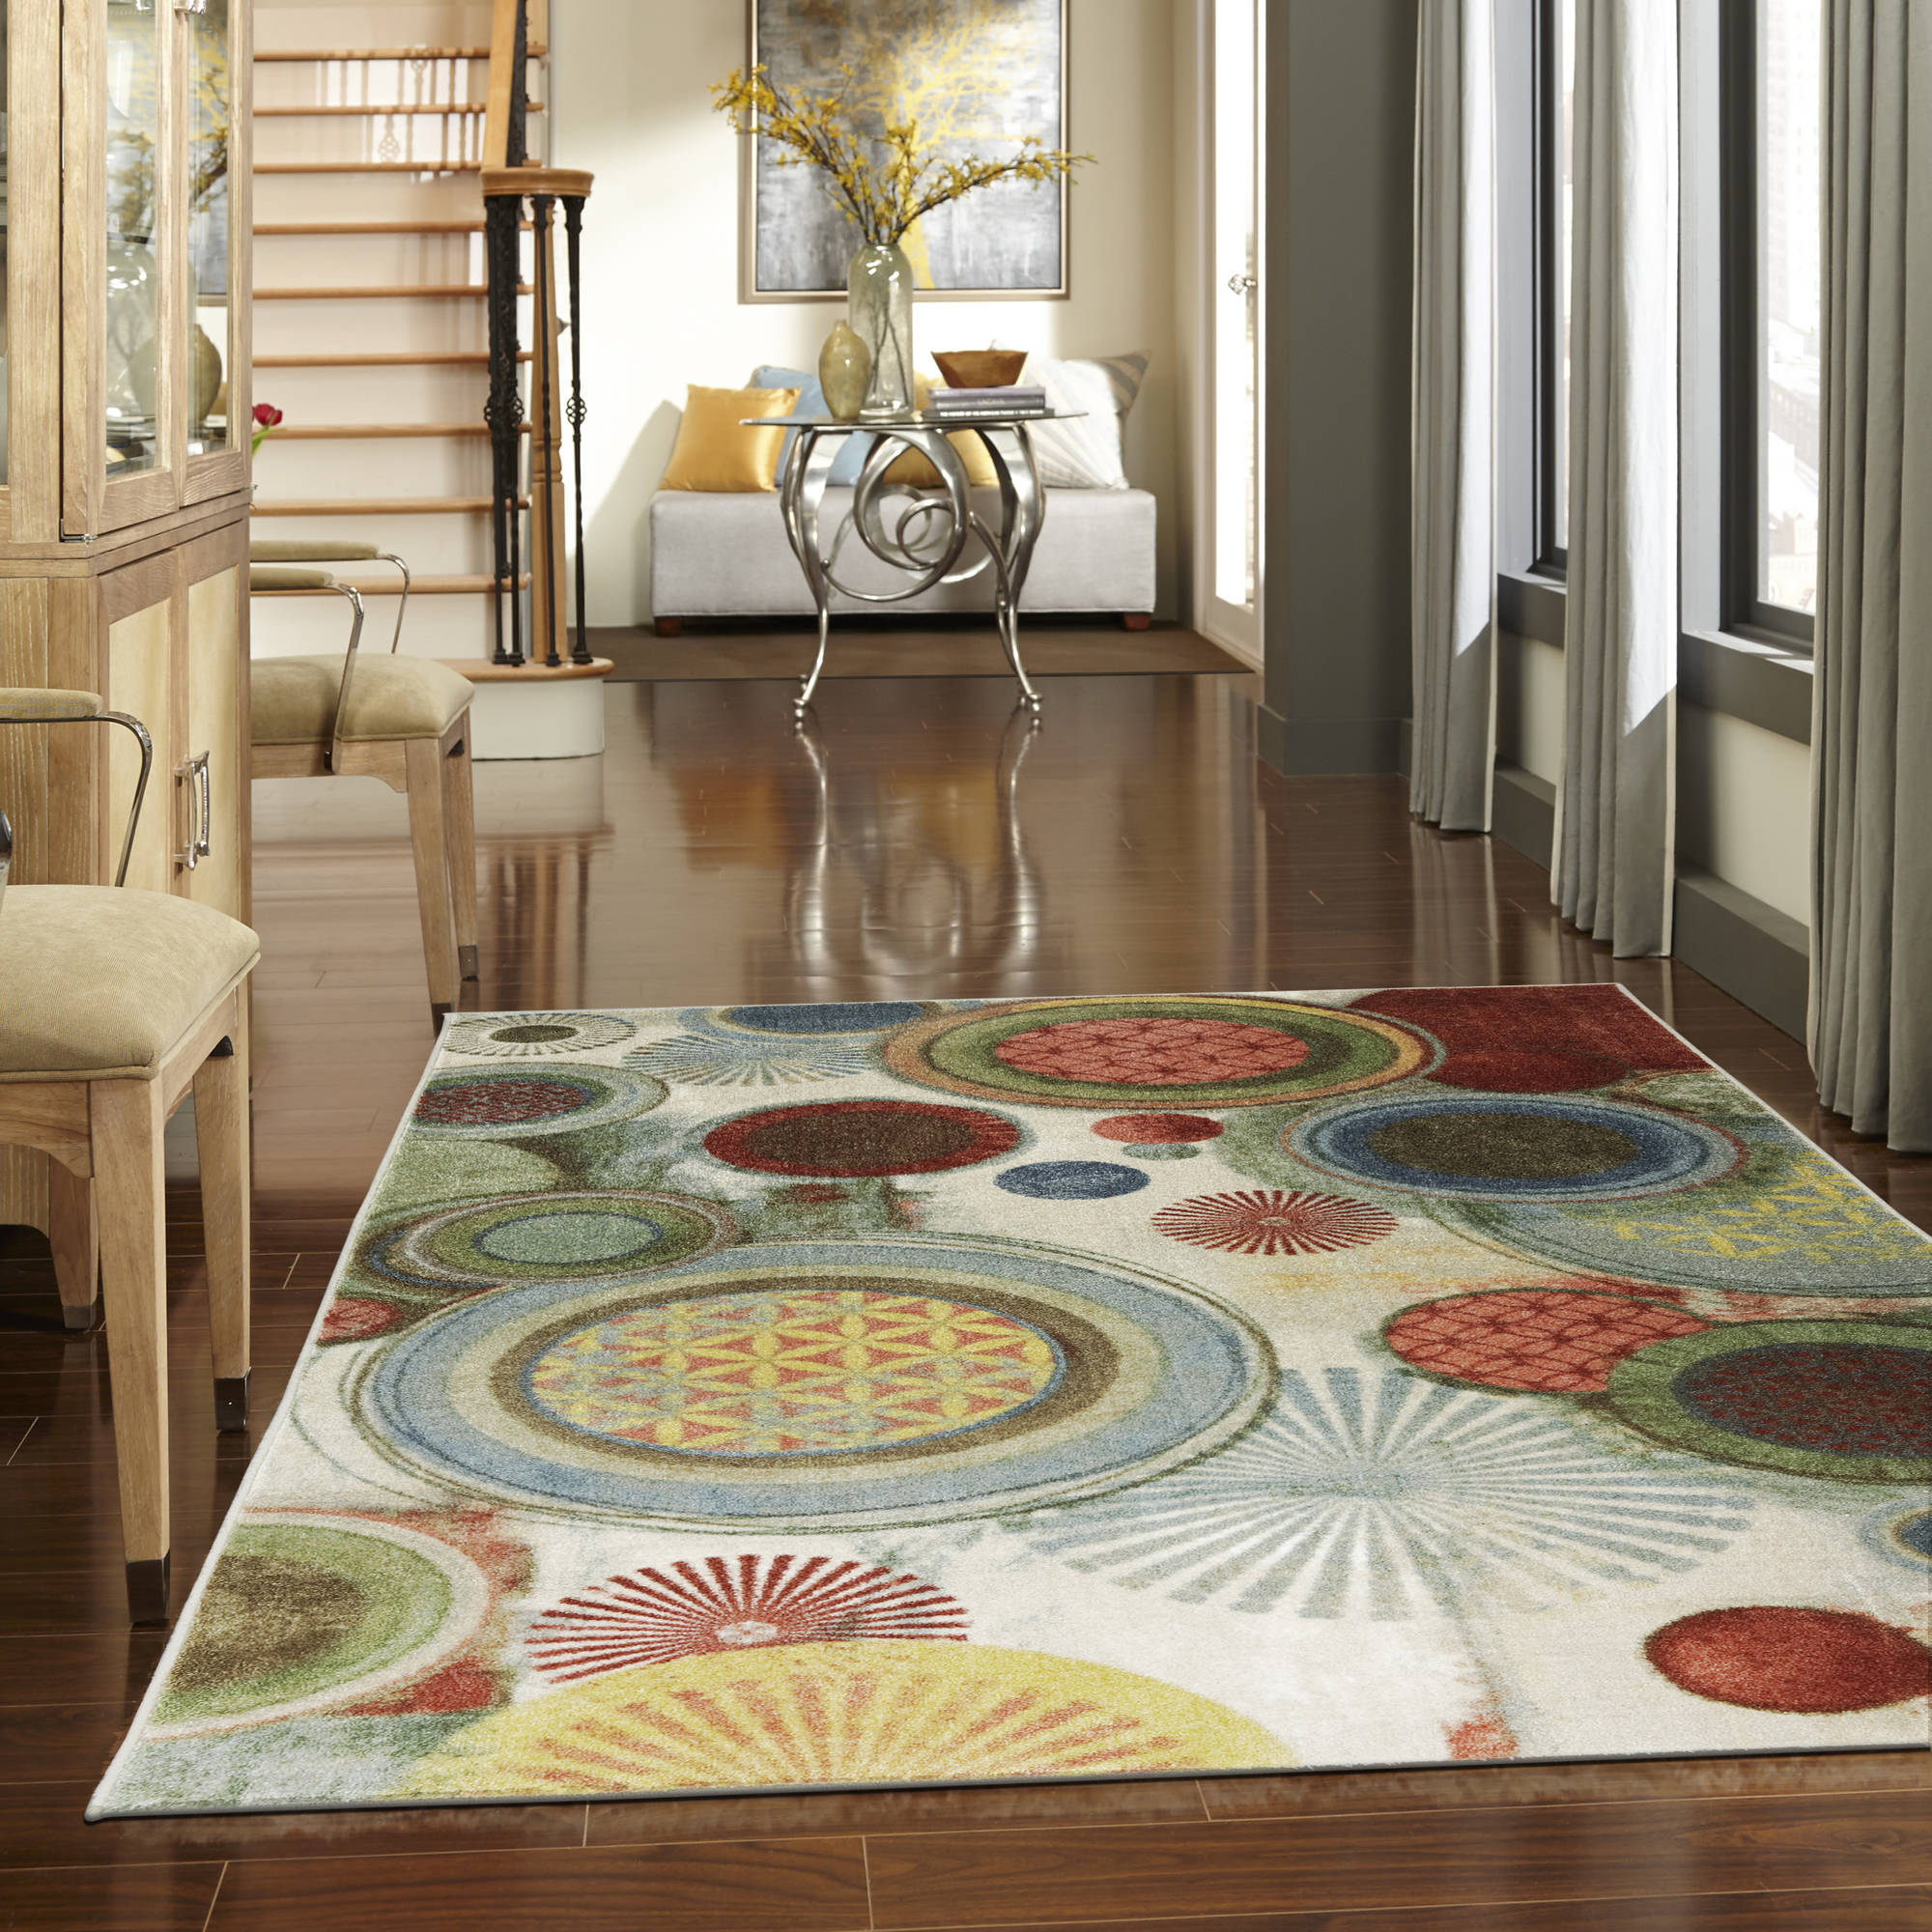 Mohawk Home Motion Printed Area Rug, Multicolor by Generic